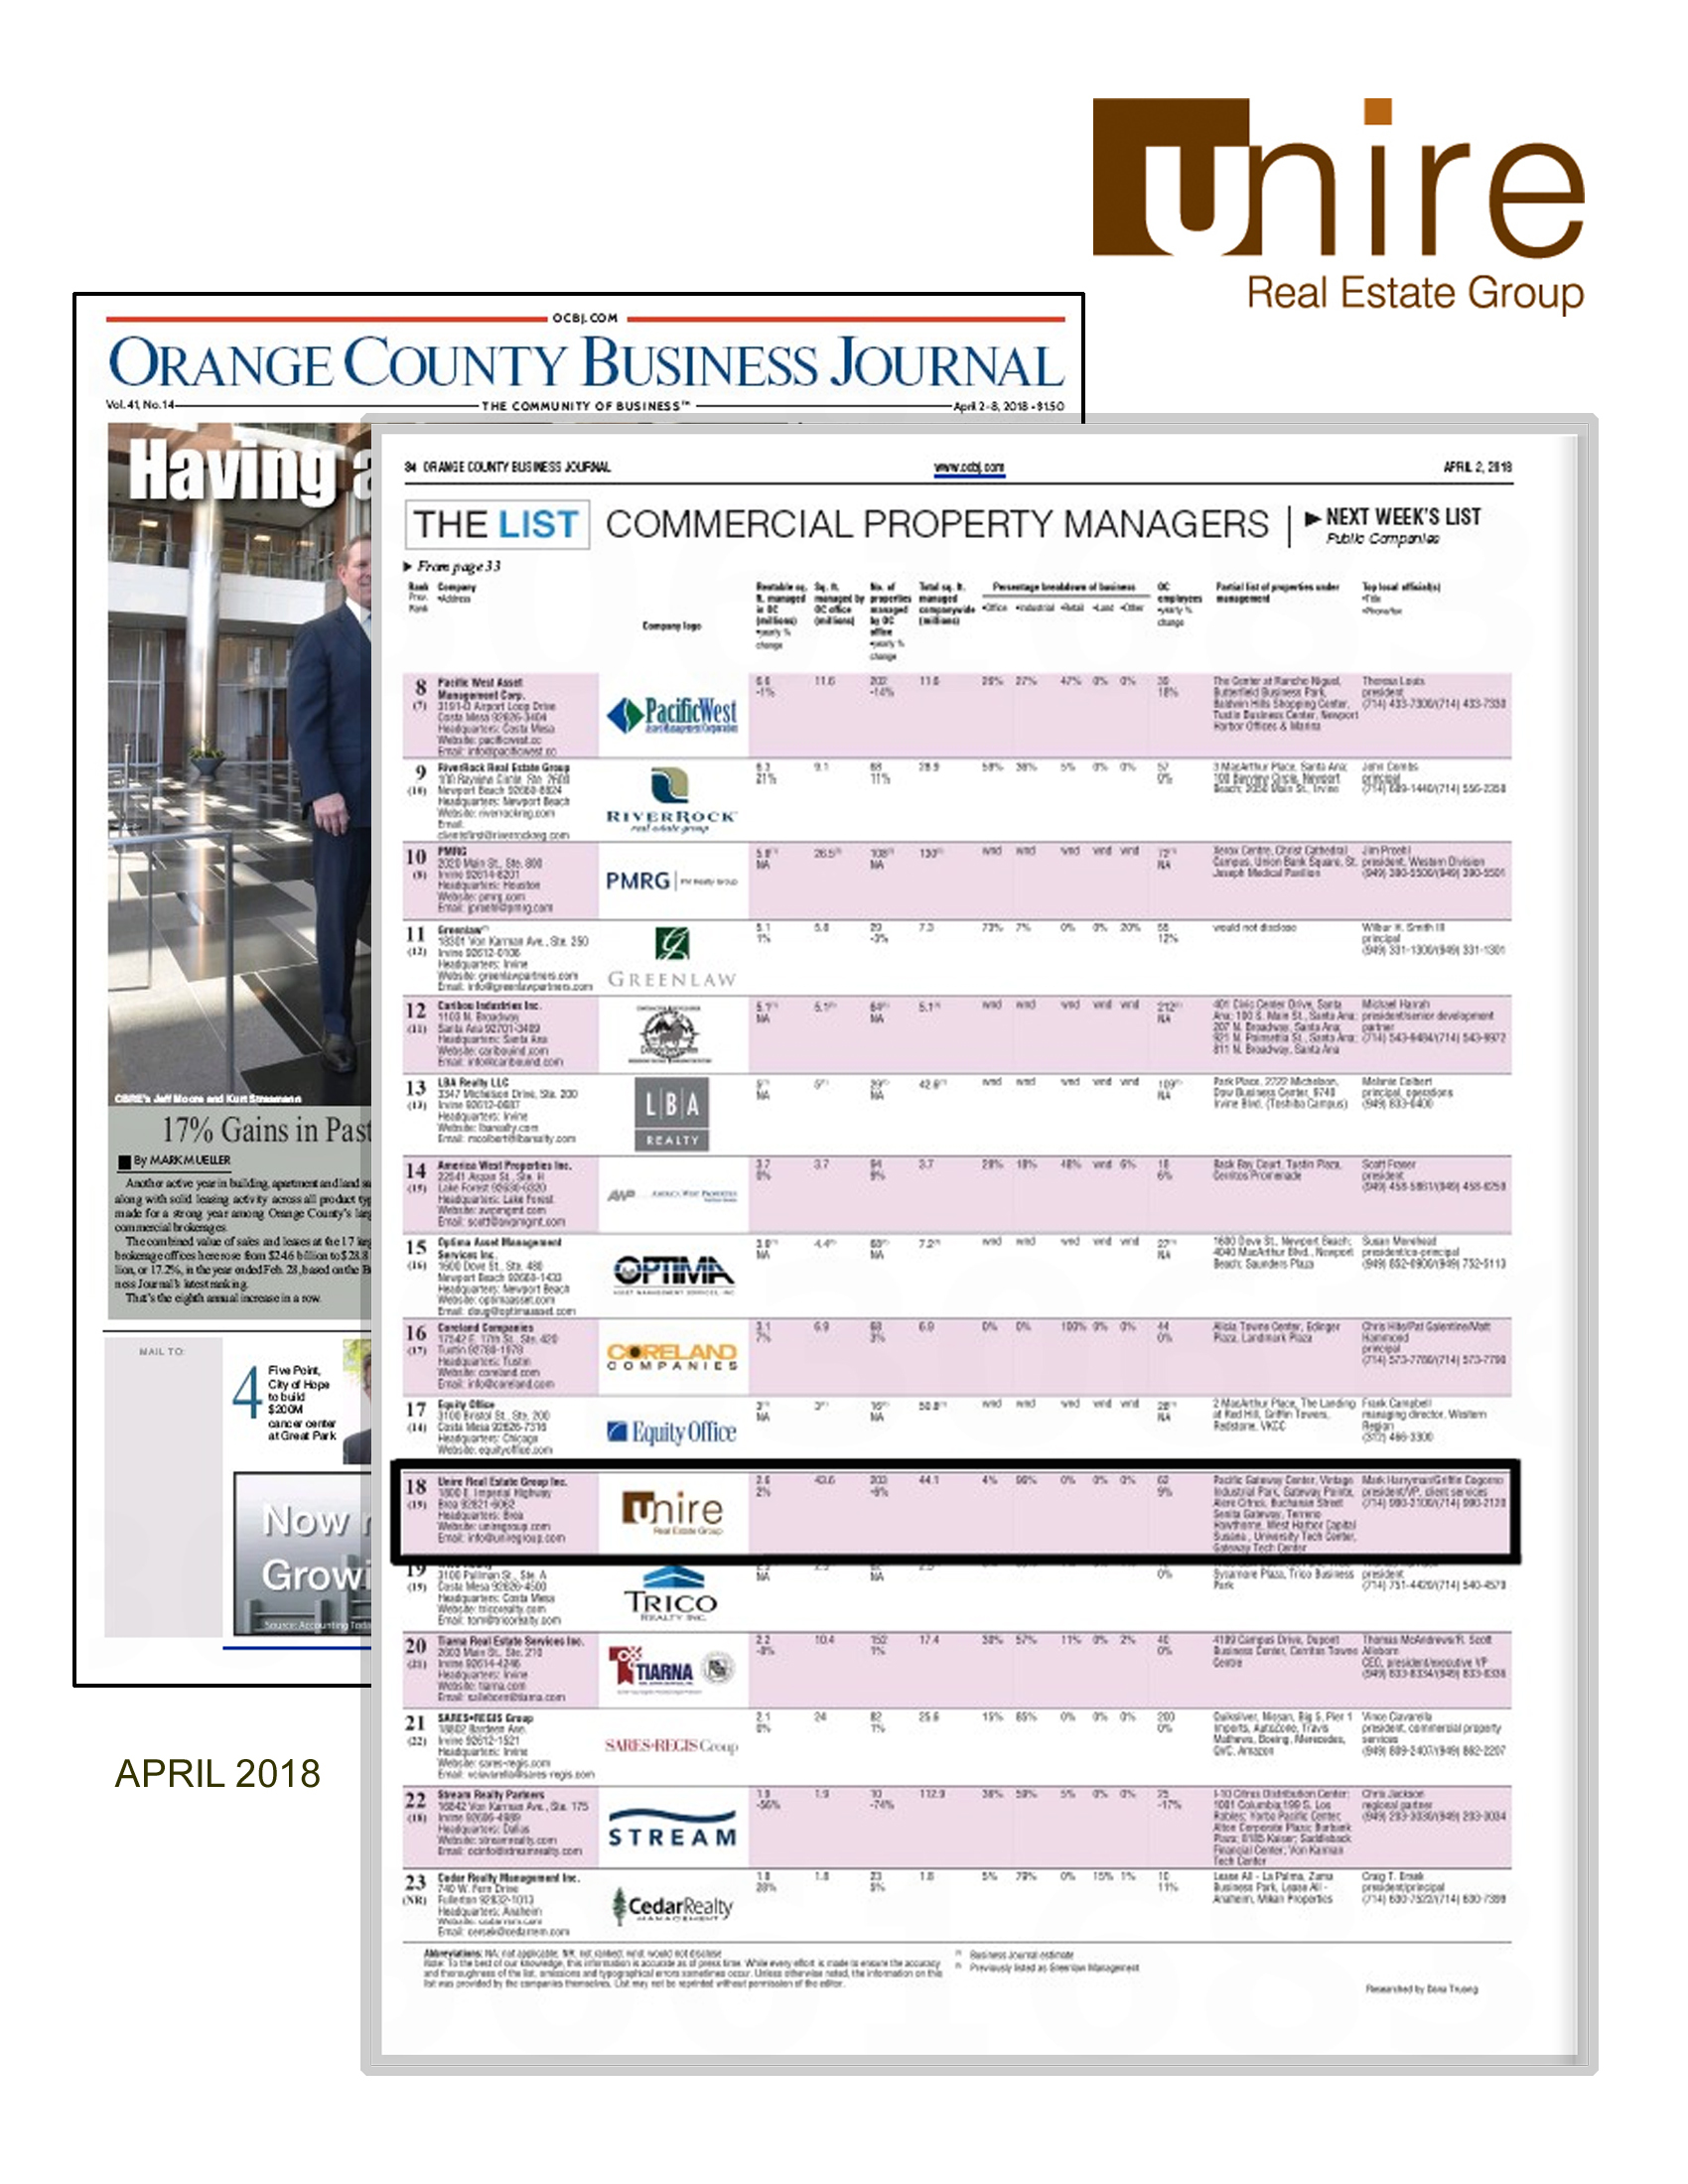 Unire Group Named to Top Commercial Property Manager List for OCBJ